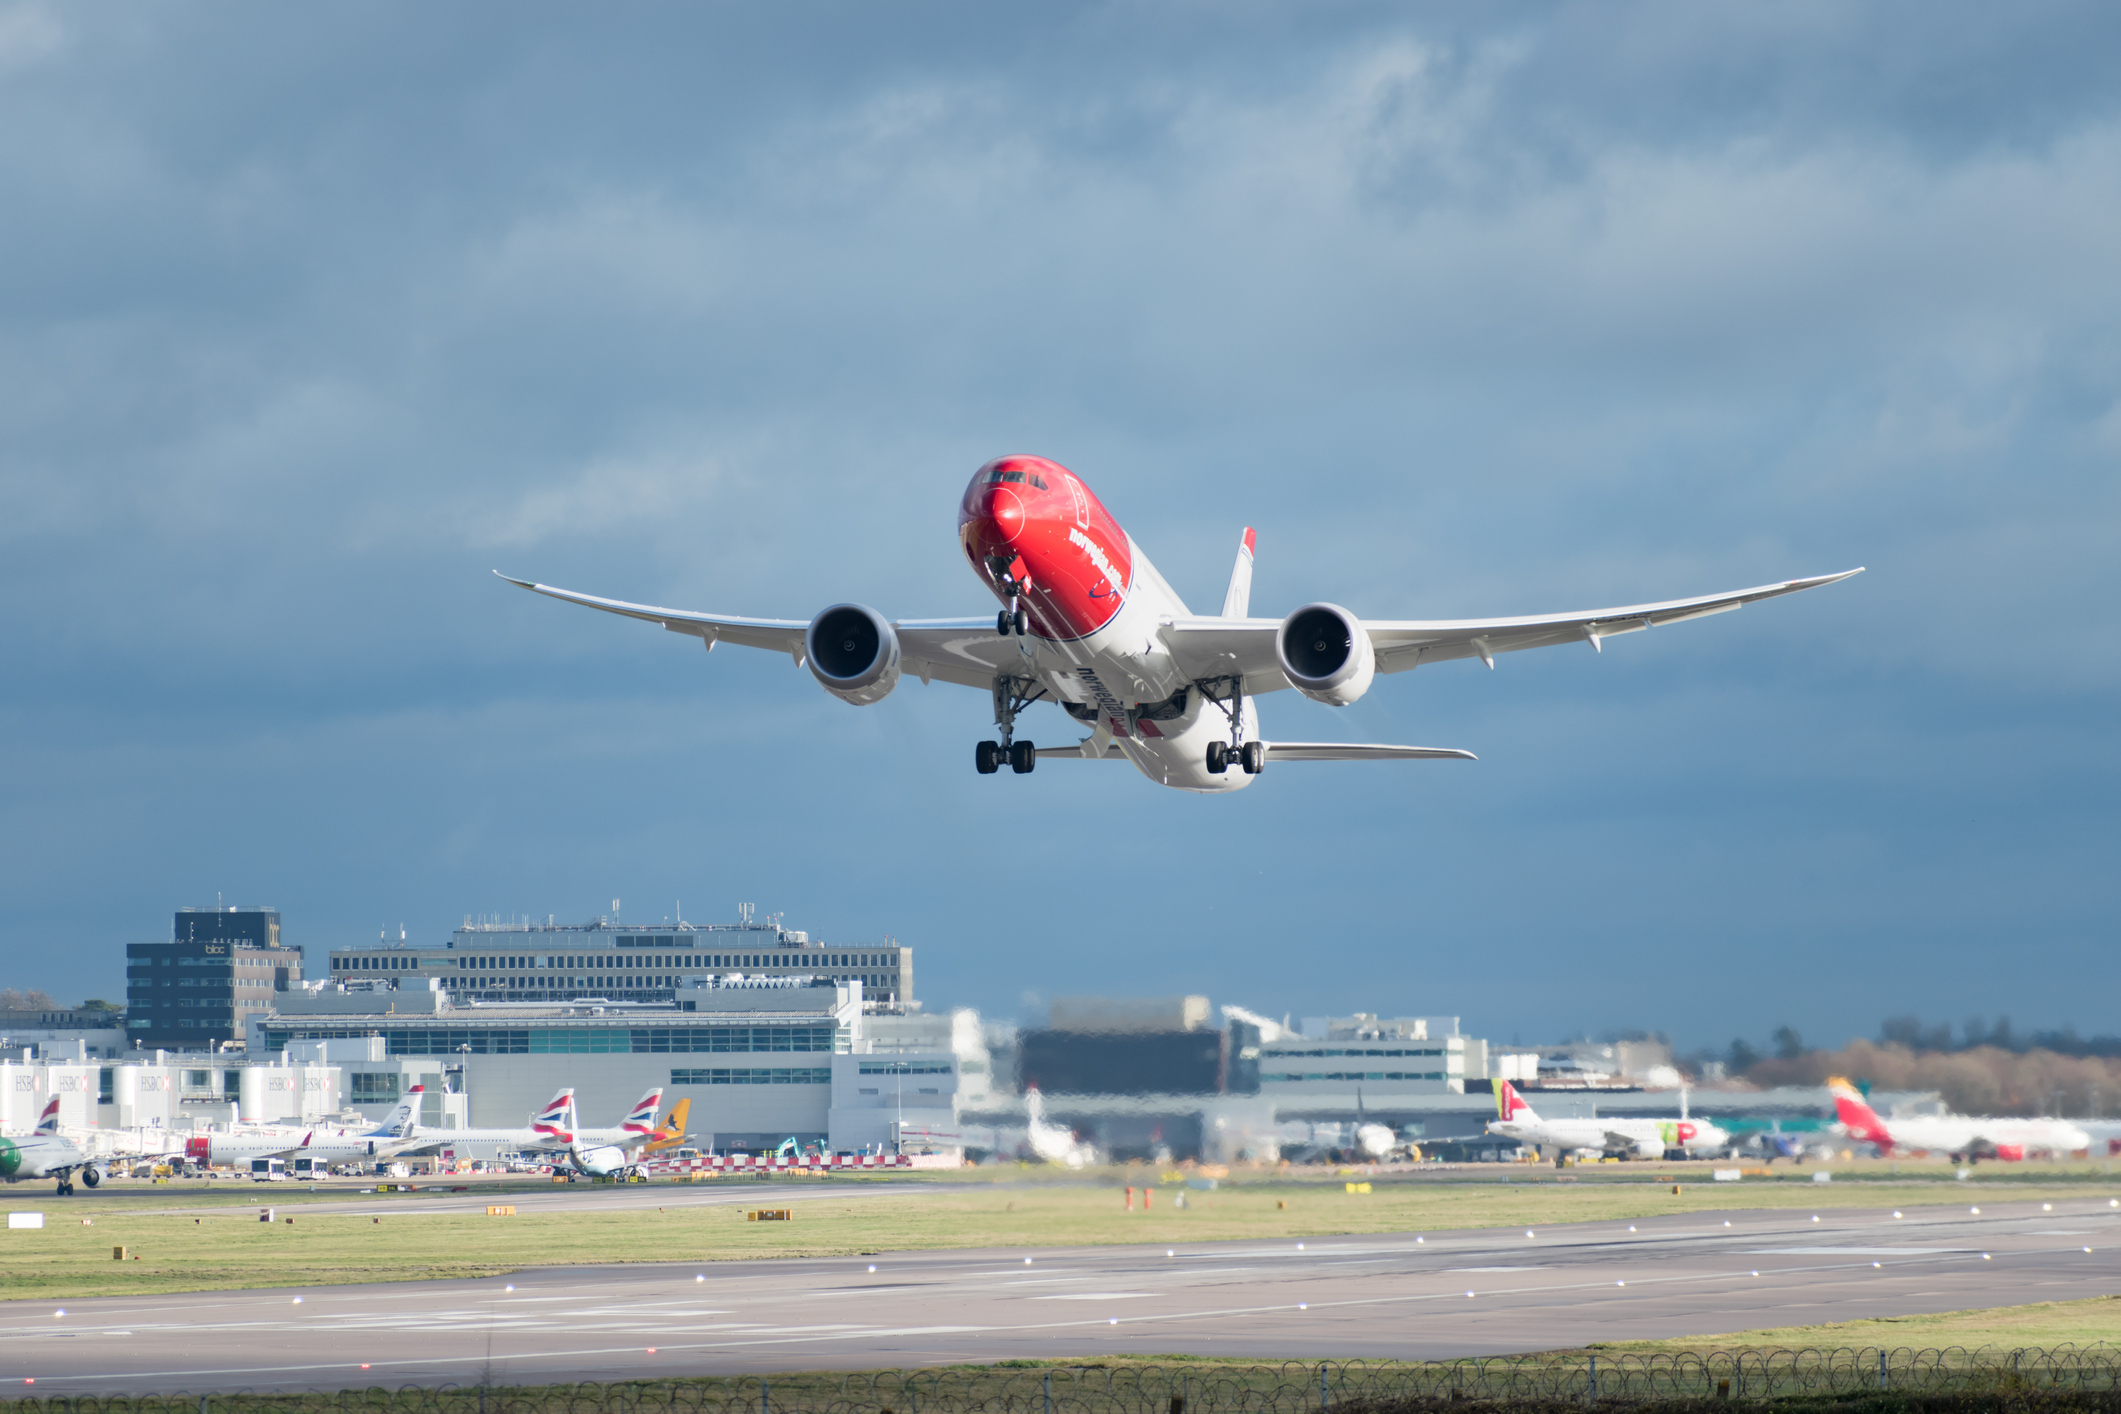 A Norwegian jet departing at Gatwick Airport